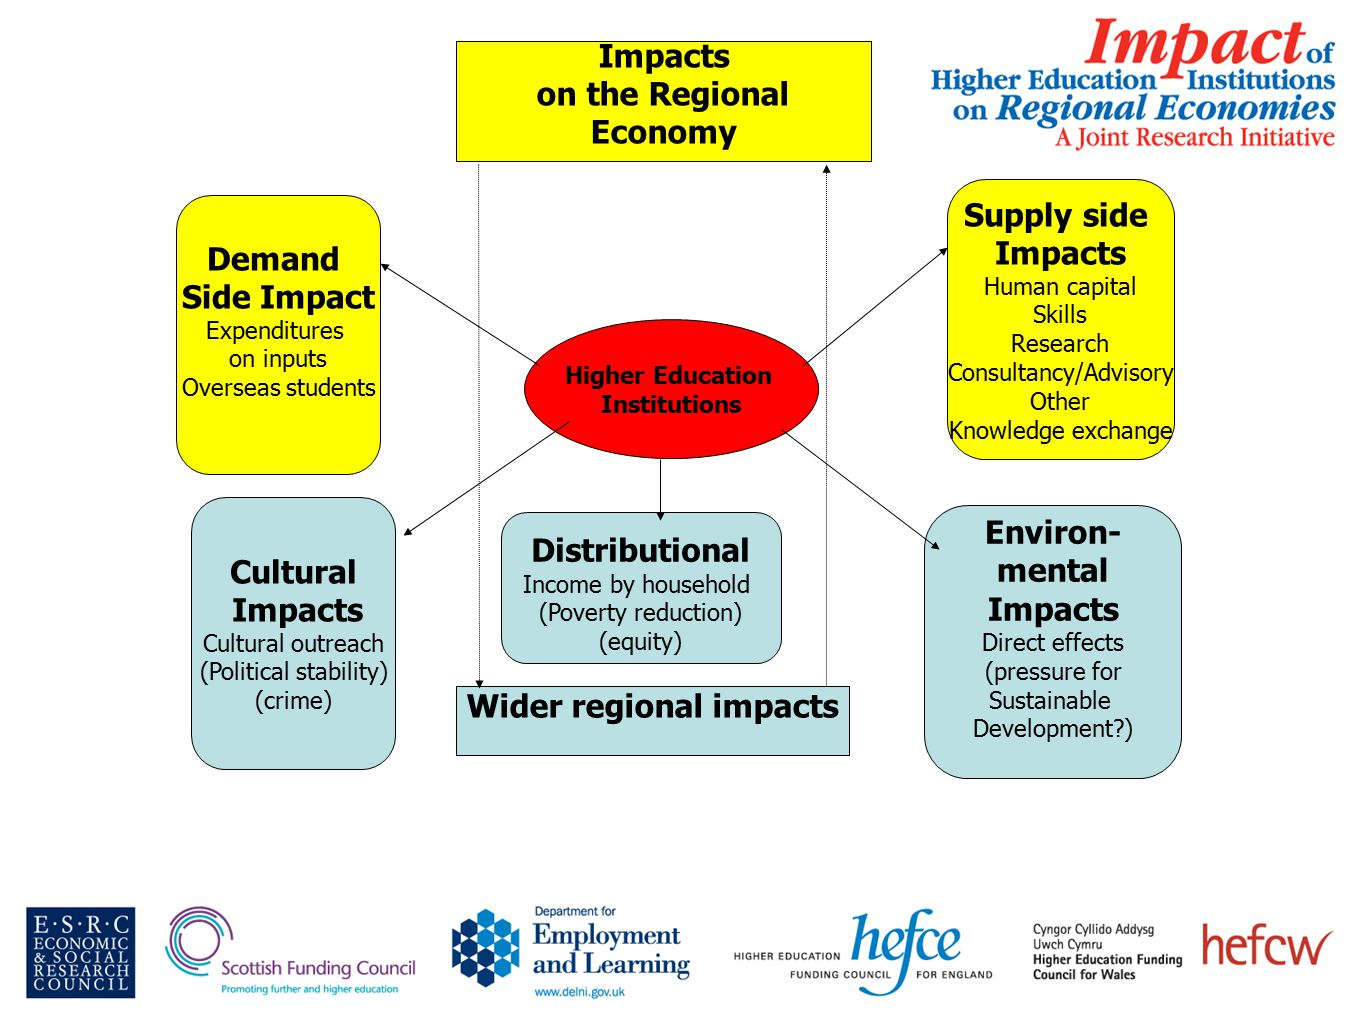 Demand Side Impact Expenditures on inputs Overseas students Higher Education Institutions Supply side Impacts Human capital Skills Research Consultancy/Advisory Other Knowledge exchange Impacts on the Regional Economy Cultural Impacts Cultural outreach (Political stability) (crime) Environ- mental Impacts Direct effects (pressure for Sustainable Development ) Distributional Income by household (Poverty reduction) (equity) Wider regional impacts